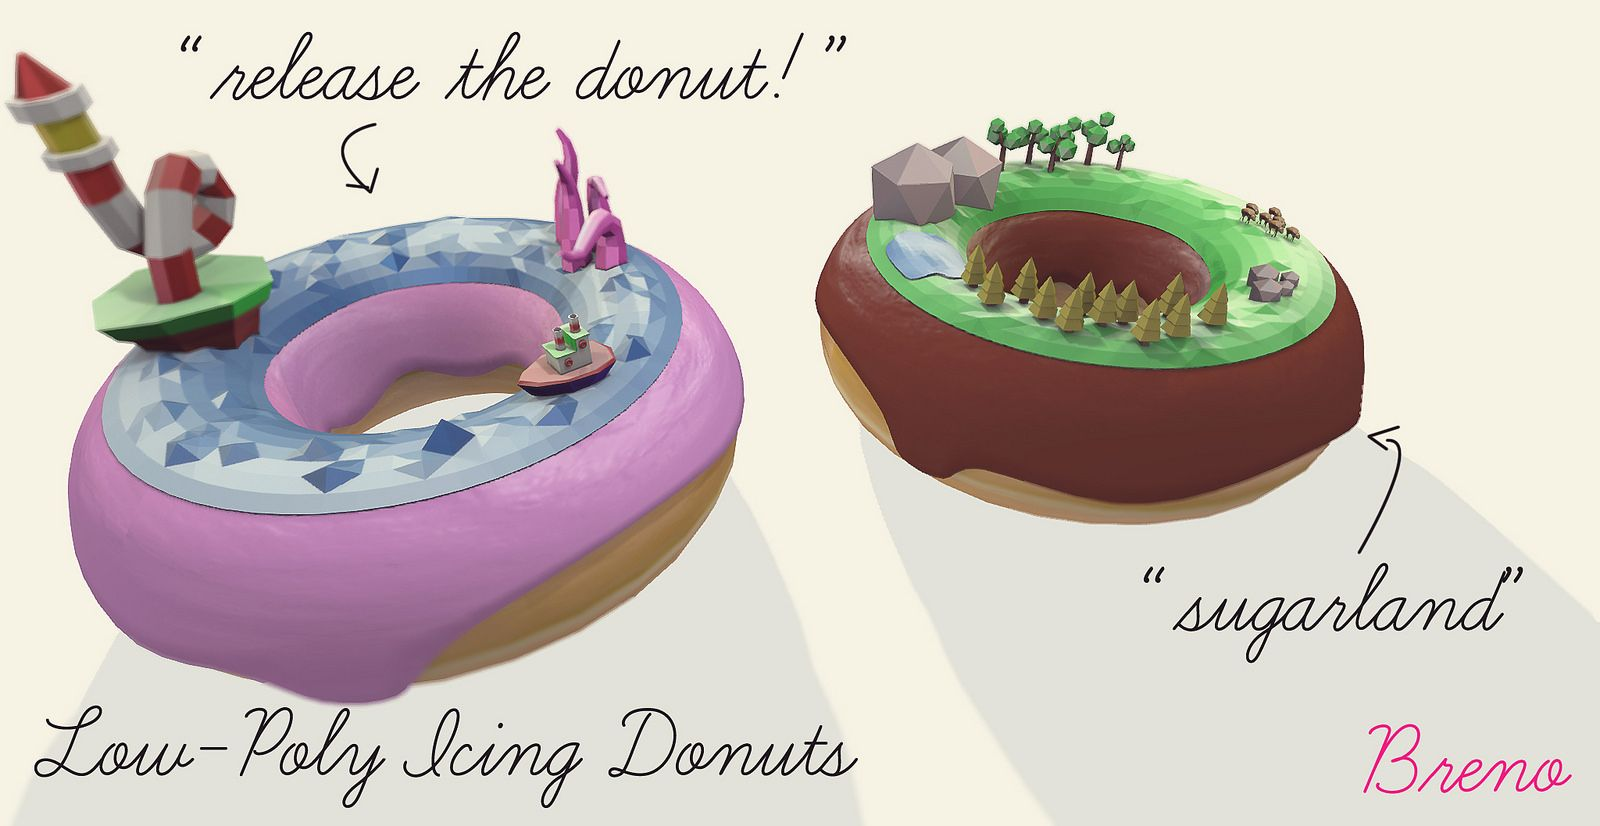 For Atelier Kreslo, Donut Festival | Flickr - Photo Sharing!